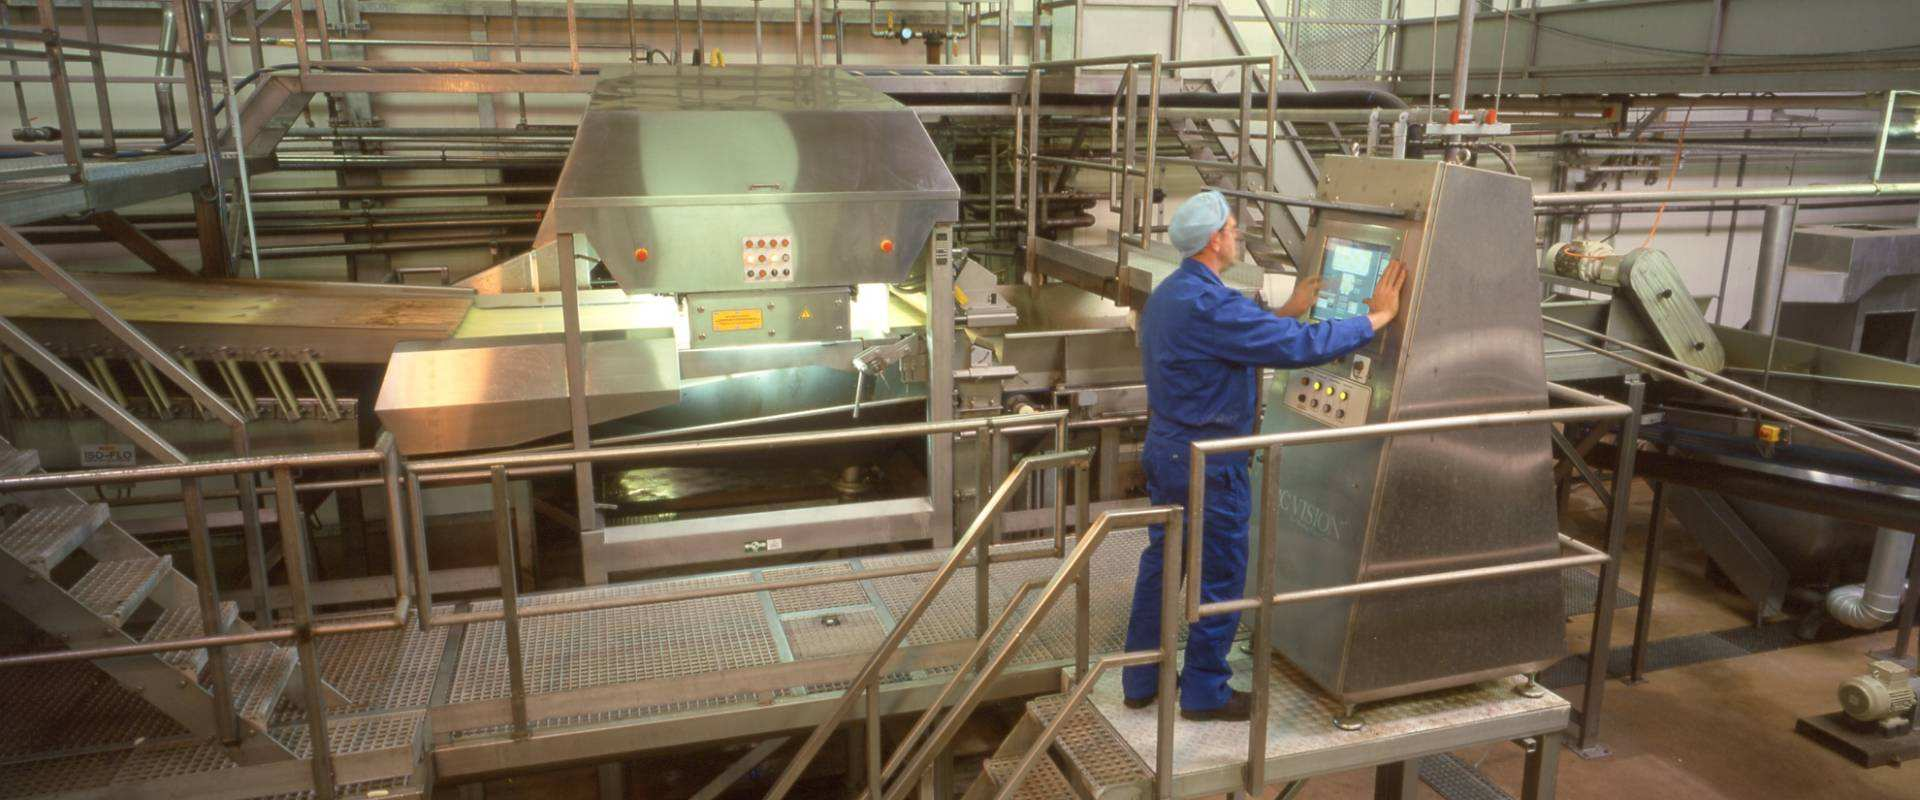 Food industry, Key Technology